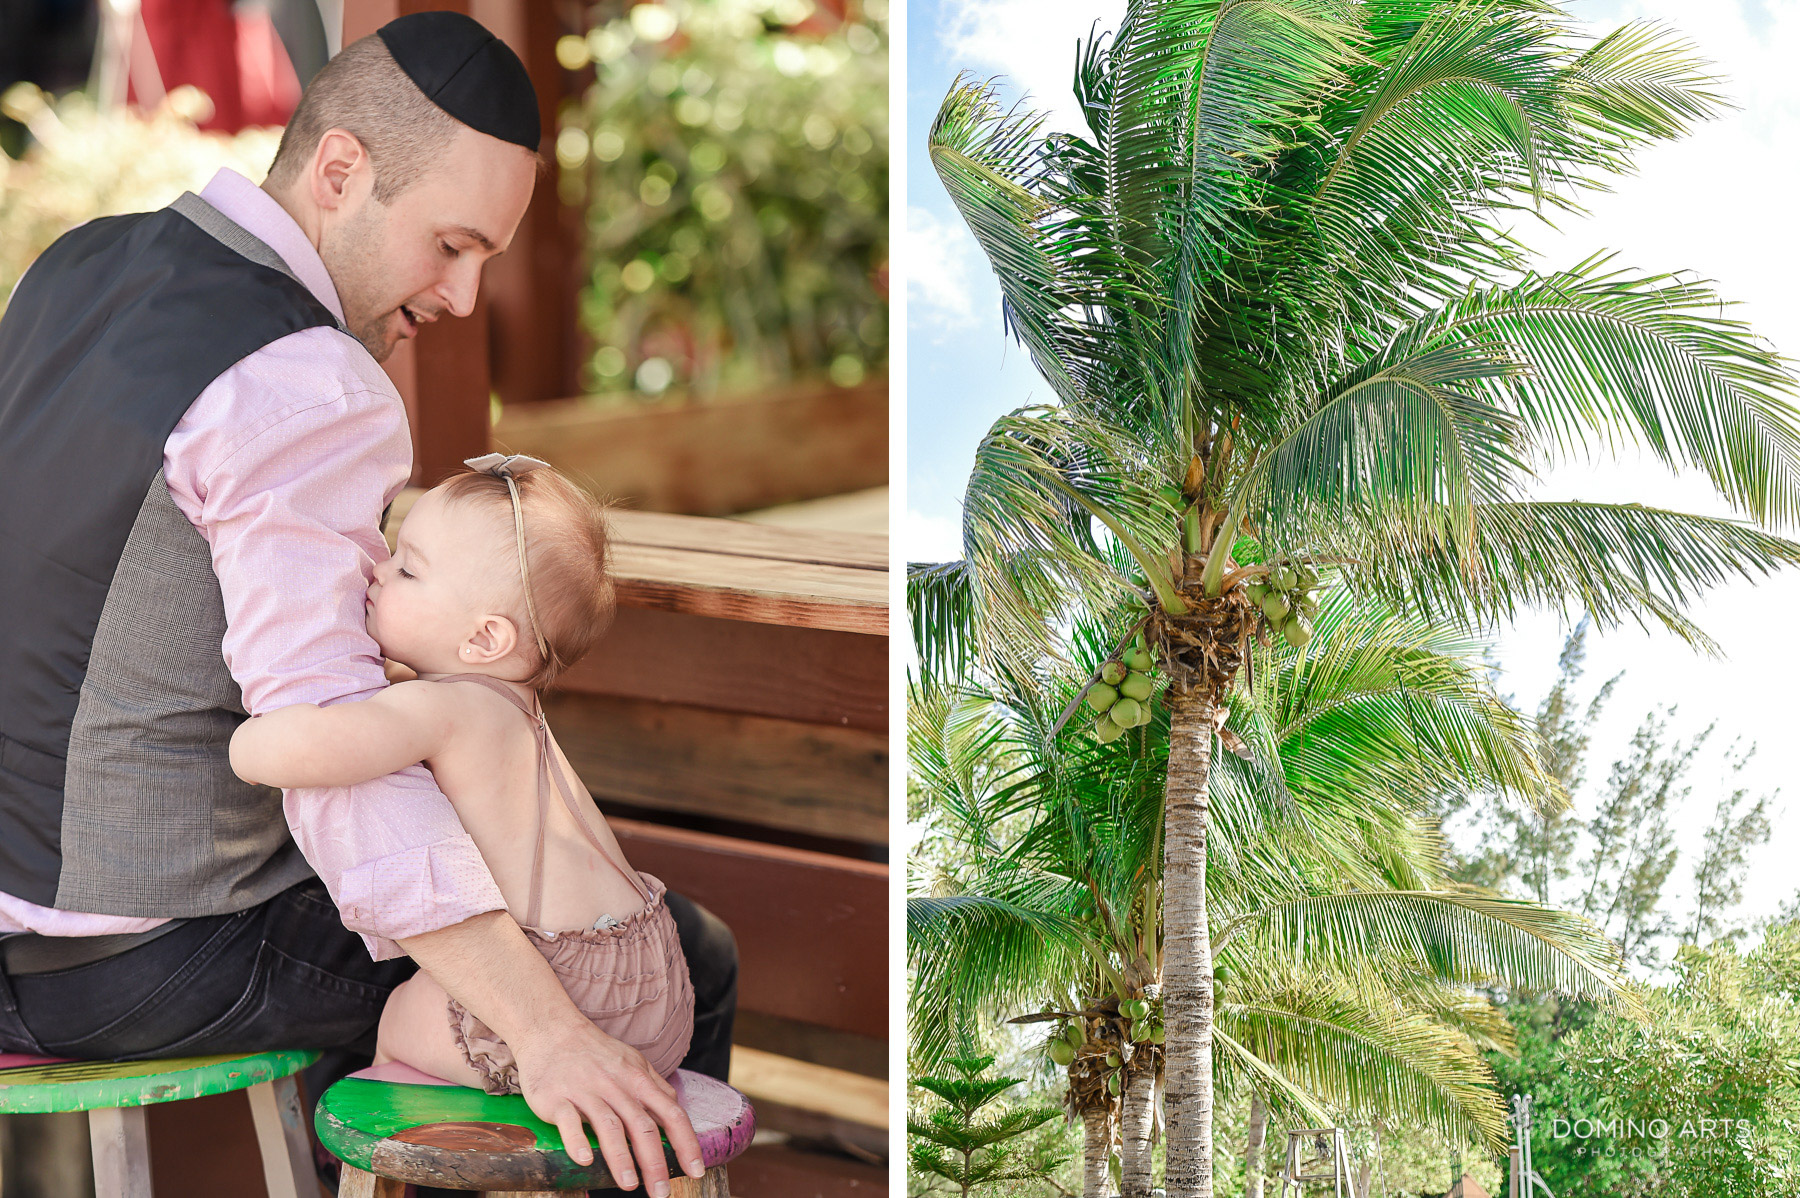 Natural Vintage look family photography in Fort Lauderdale by Domino Arts